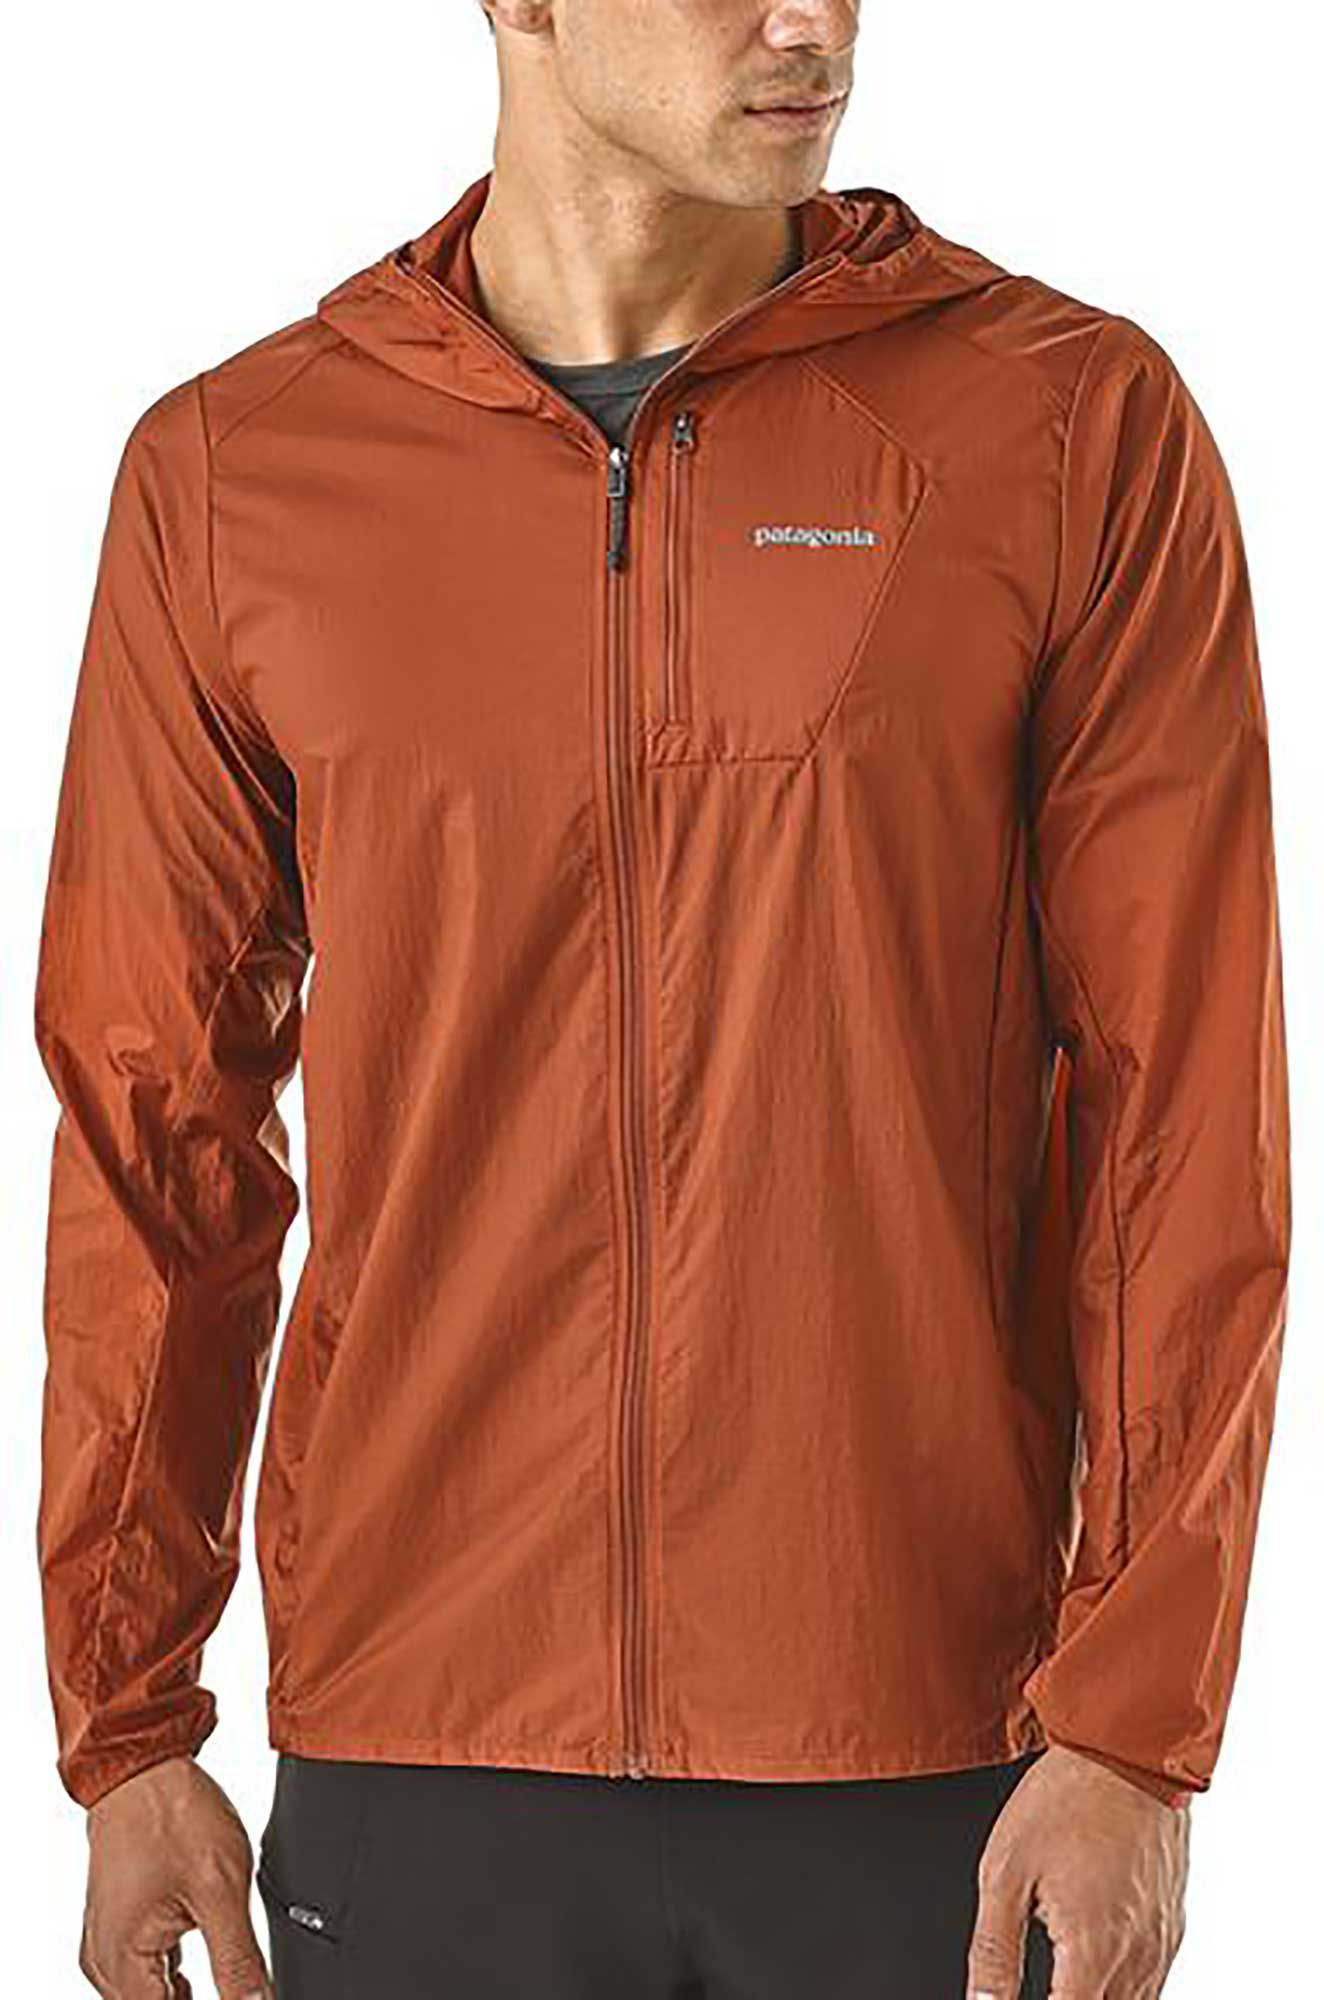 a14567ff8 Patagonia Men's Houdini Shell Jacket | Products | Jackets, Outerwear ...